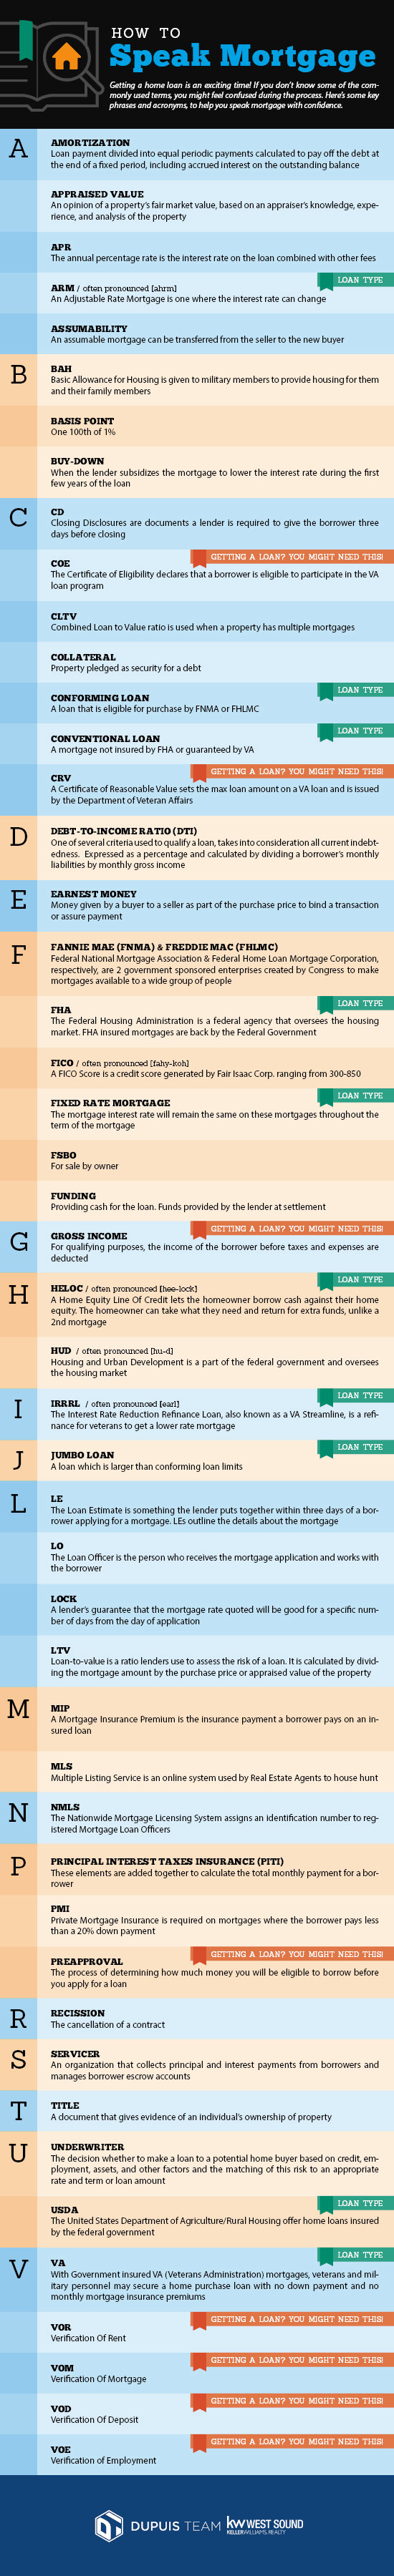 Mortgage Terms A-Z: Infographic!